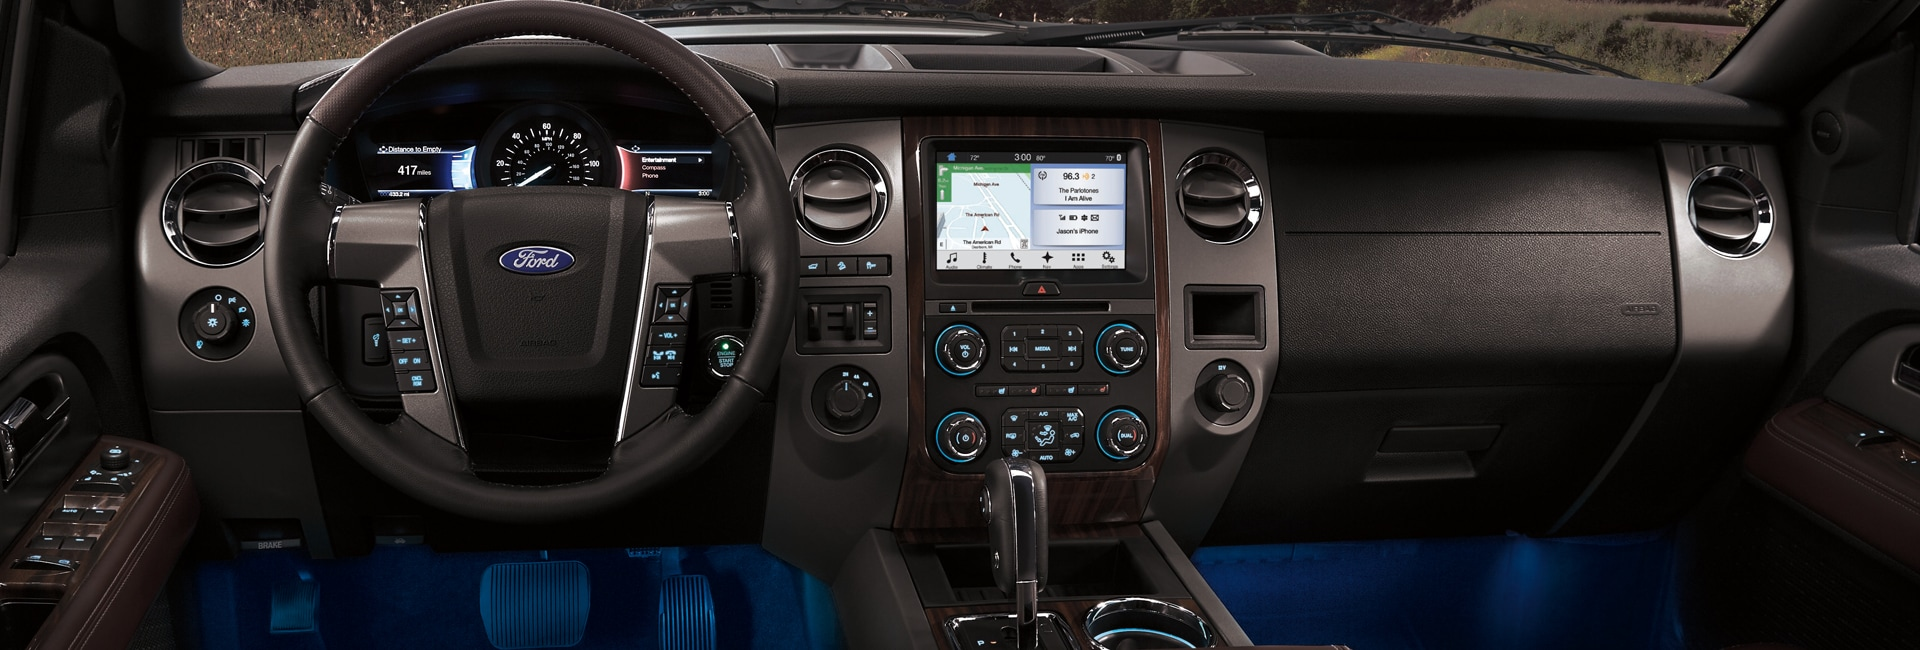 2017 Ford Expedition Interior Features